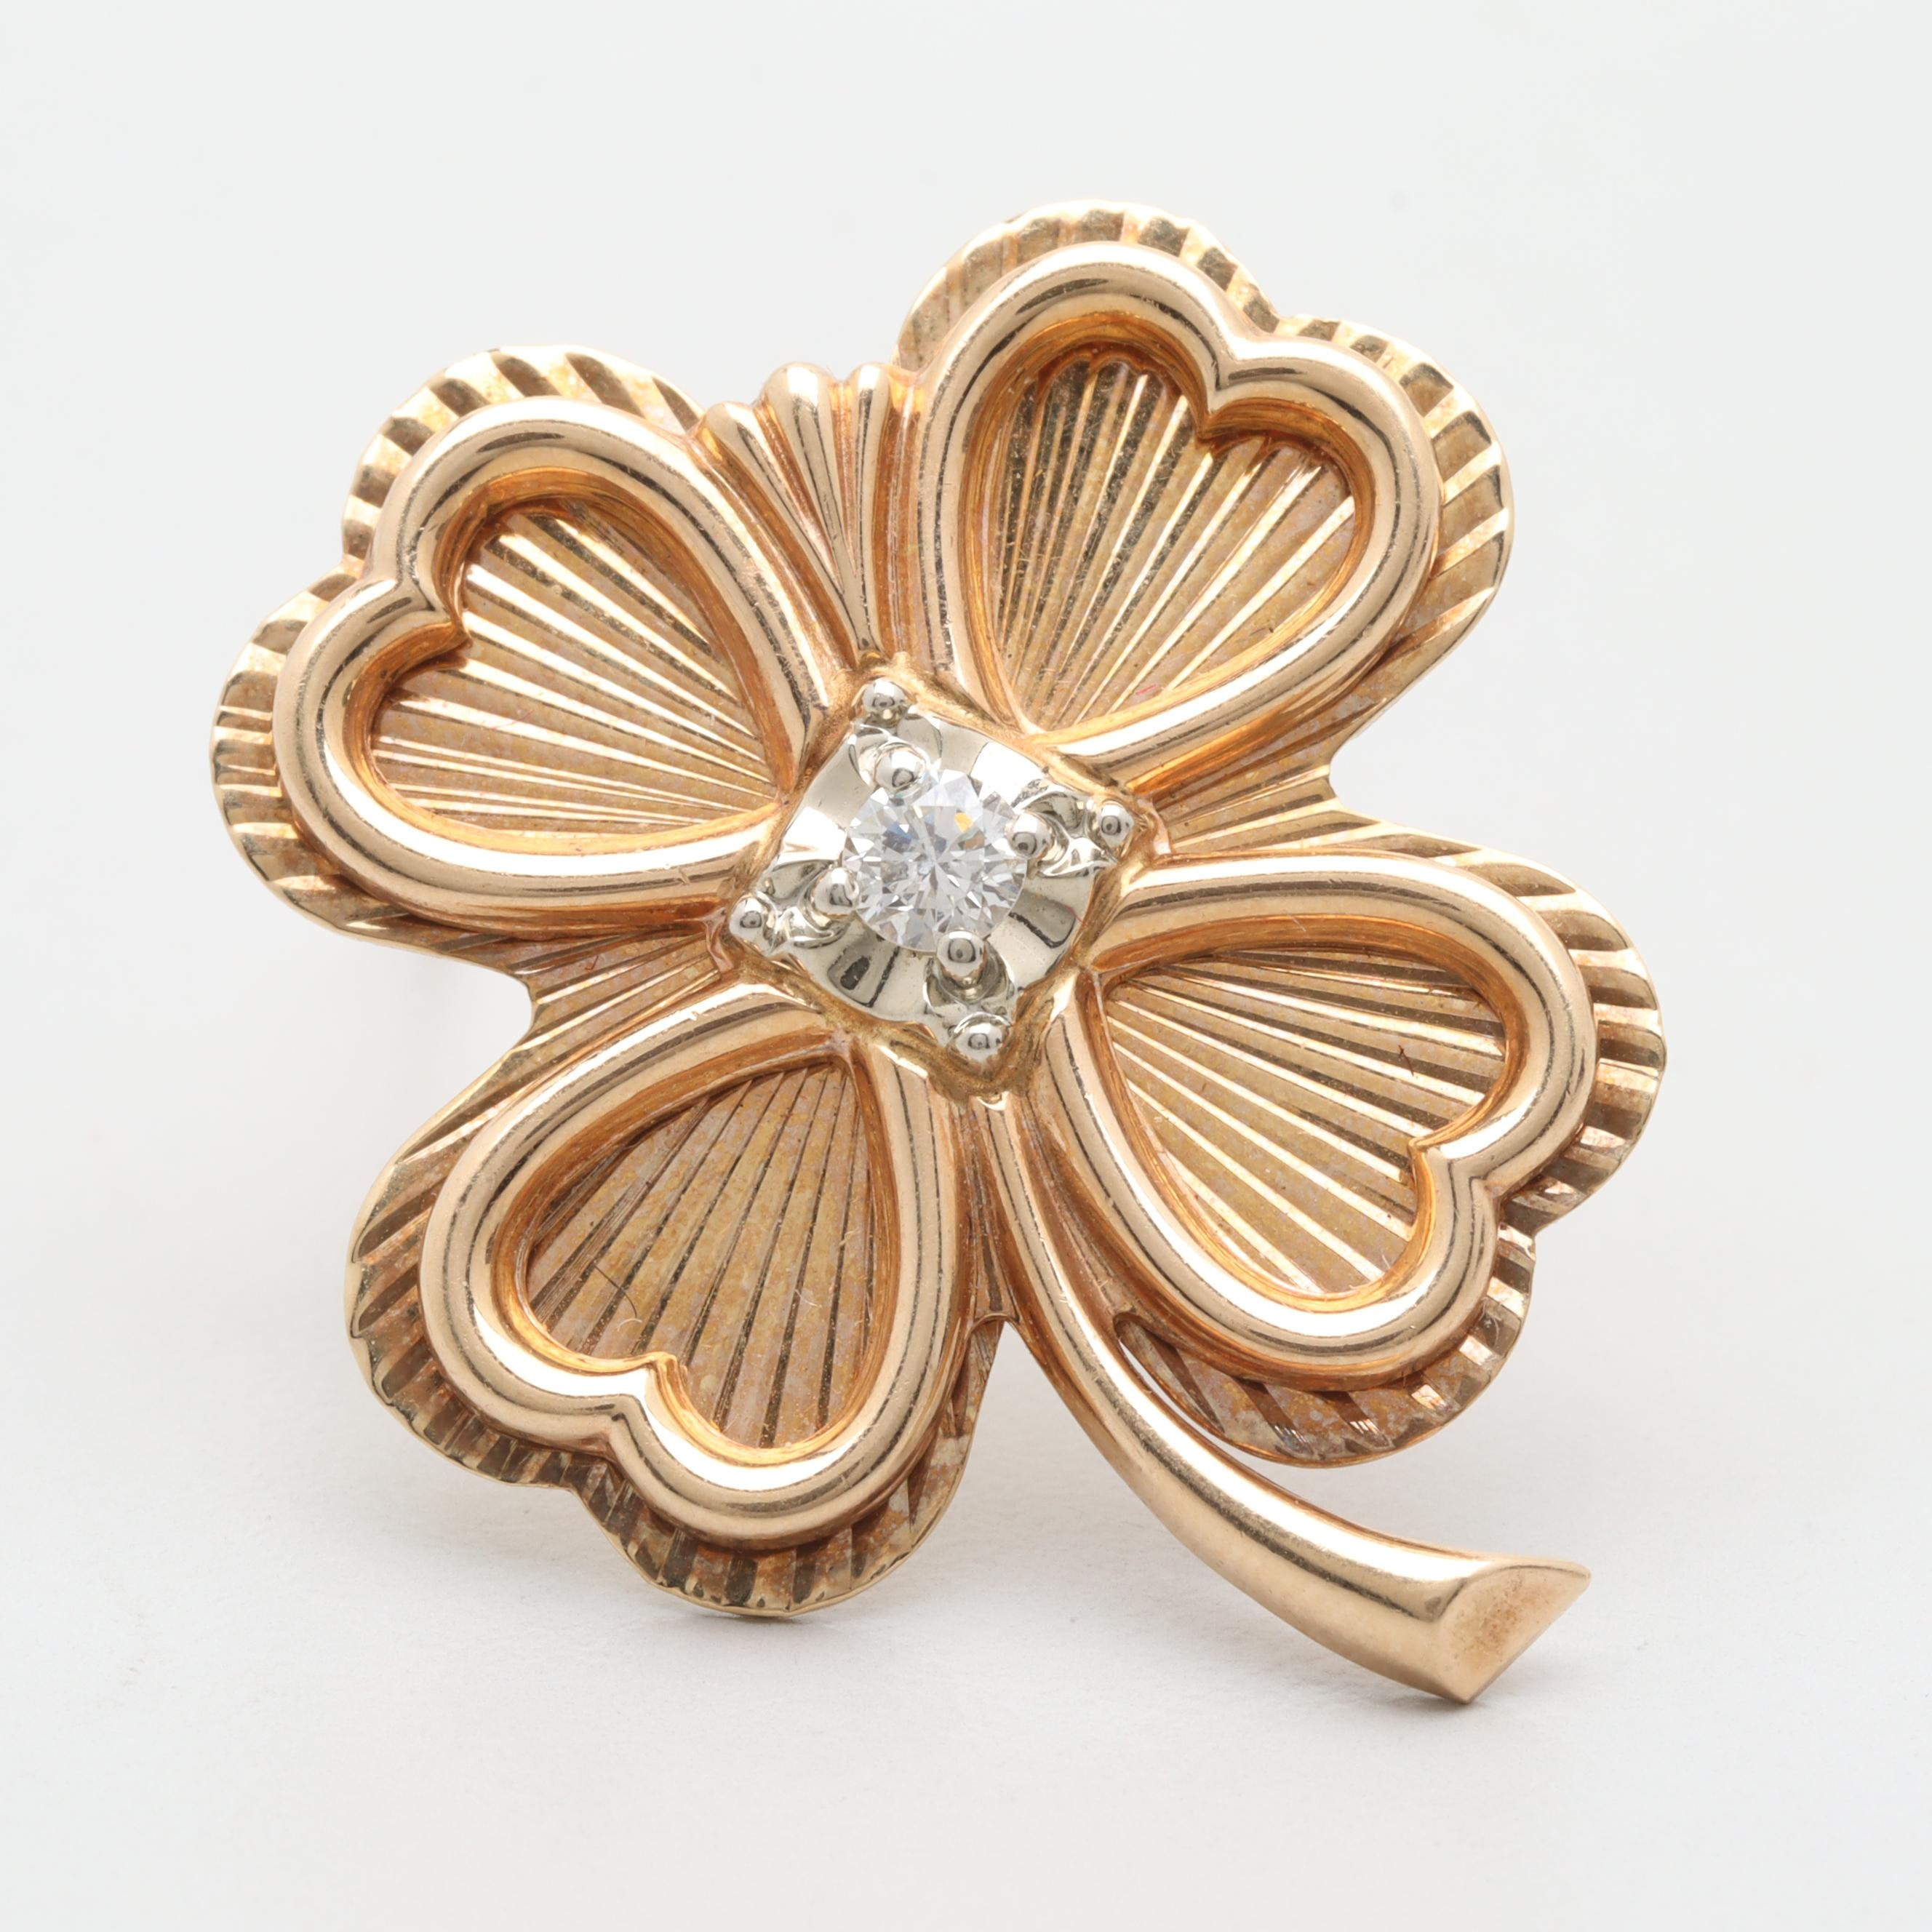 Vintage 14K Yellow Gold Diamond Clover Brooch